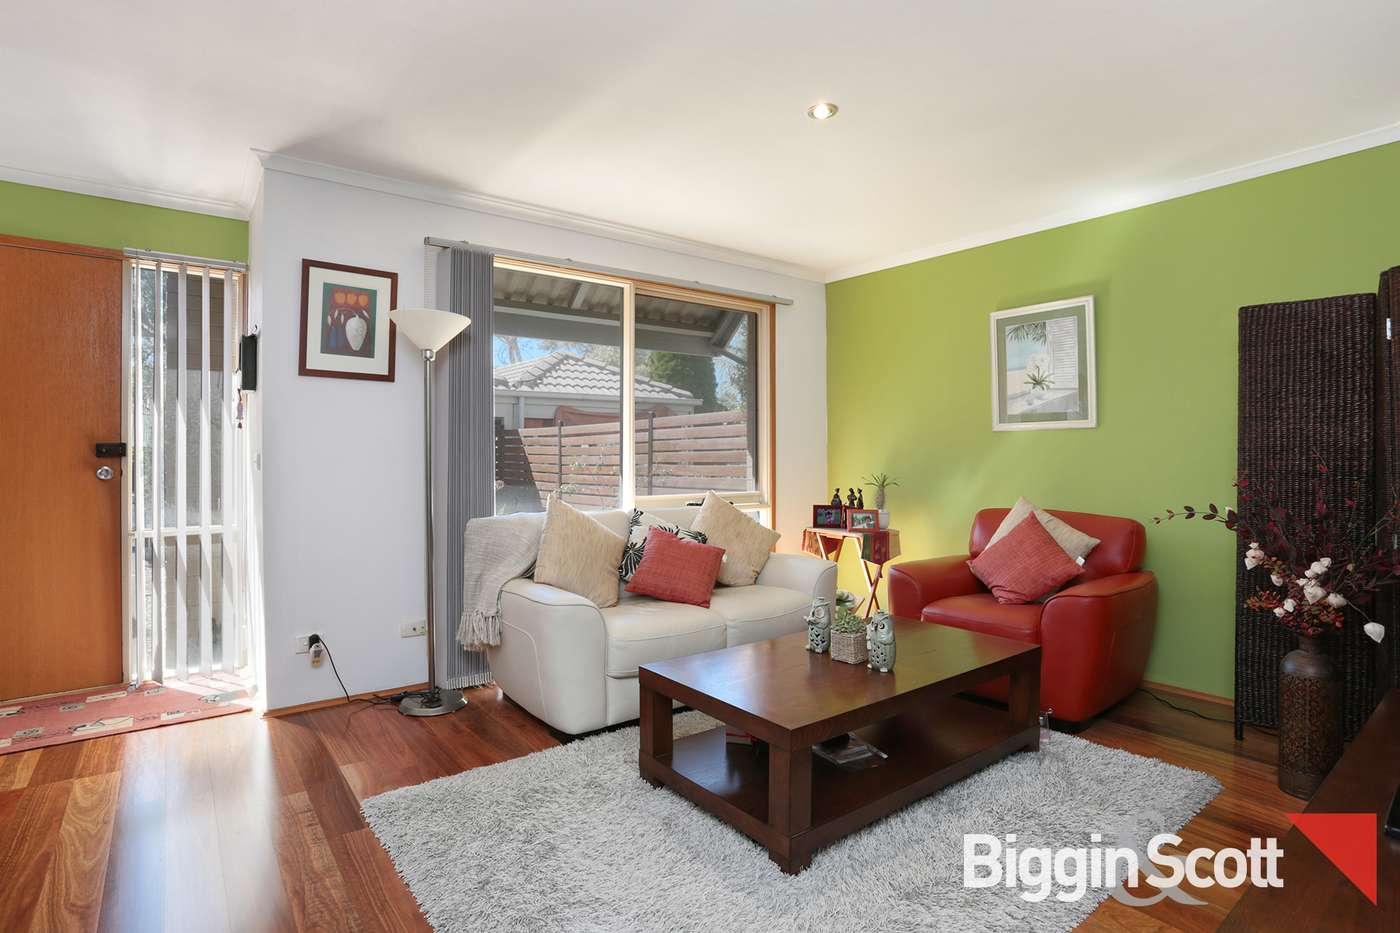 Main view of Homely house listing, 21 Deveney Street, Kensington, VIC 3031